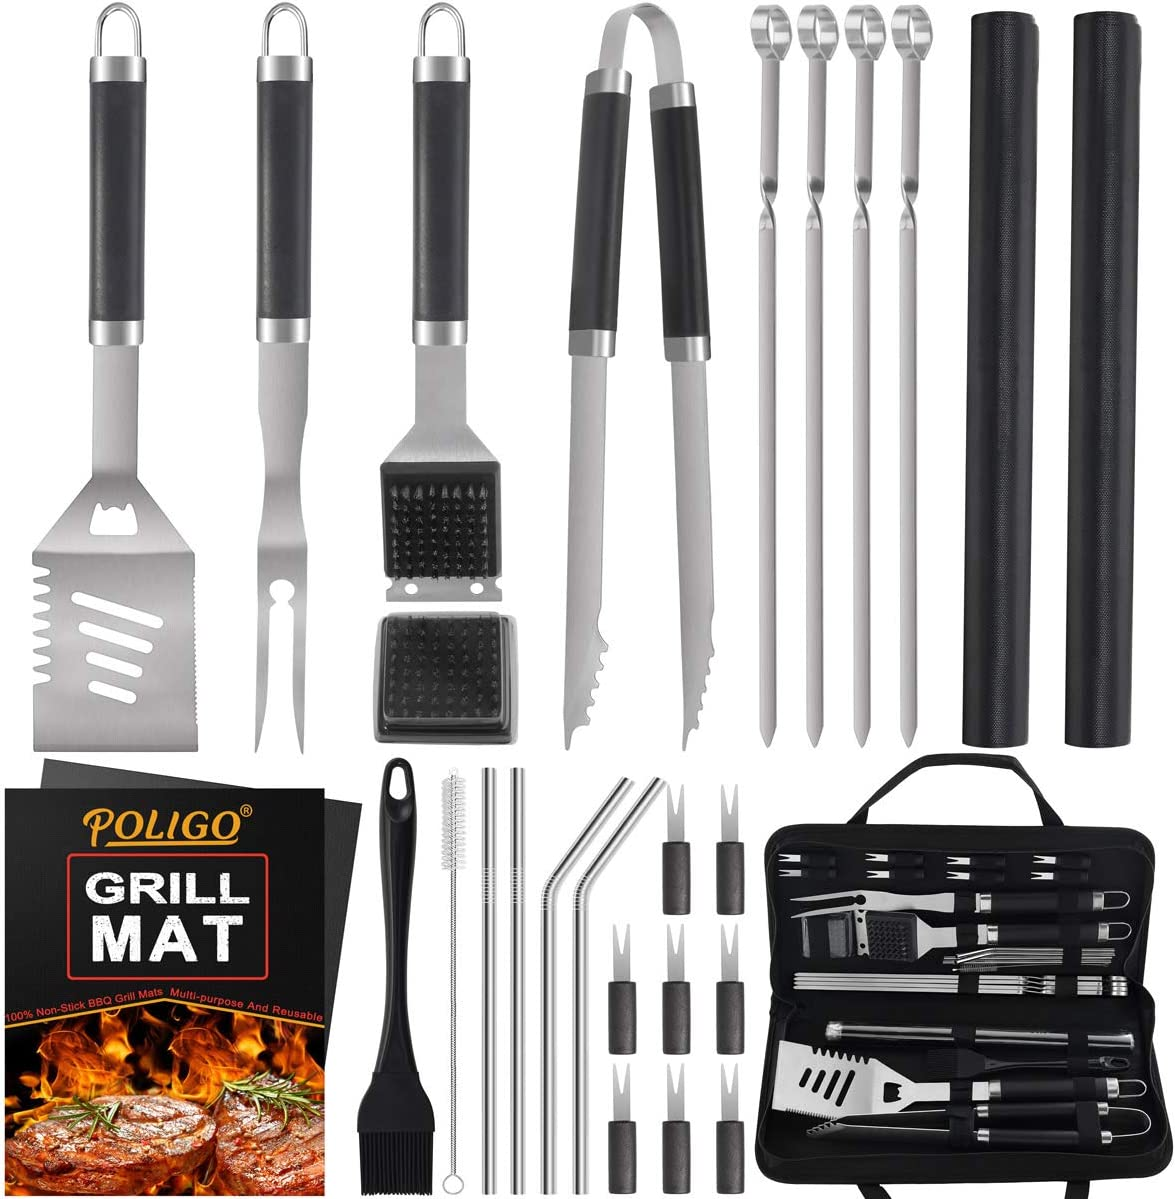 POLIGO 26 PCS BBQ Grill Accessories Stainless Steel BBQ Tools Grilling Tools Set with Storage Bag - Premium Grill Utensils Set for Dads Christmas Birthday Presents Ideal Grilling Gifts for Men Women